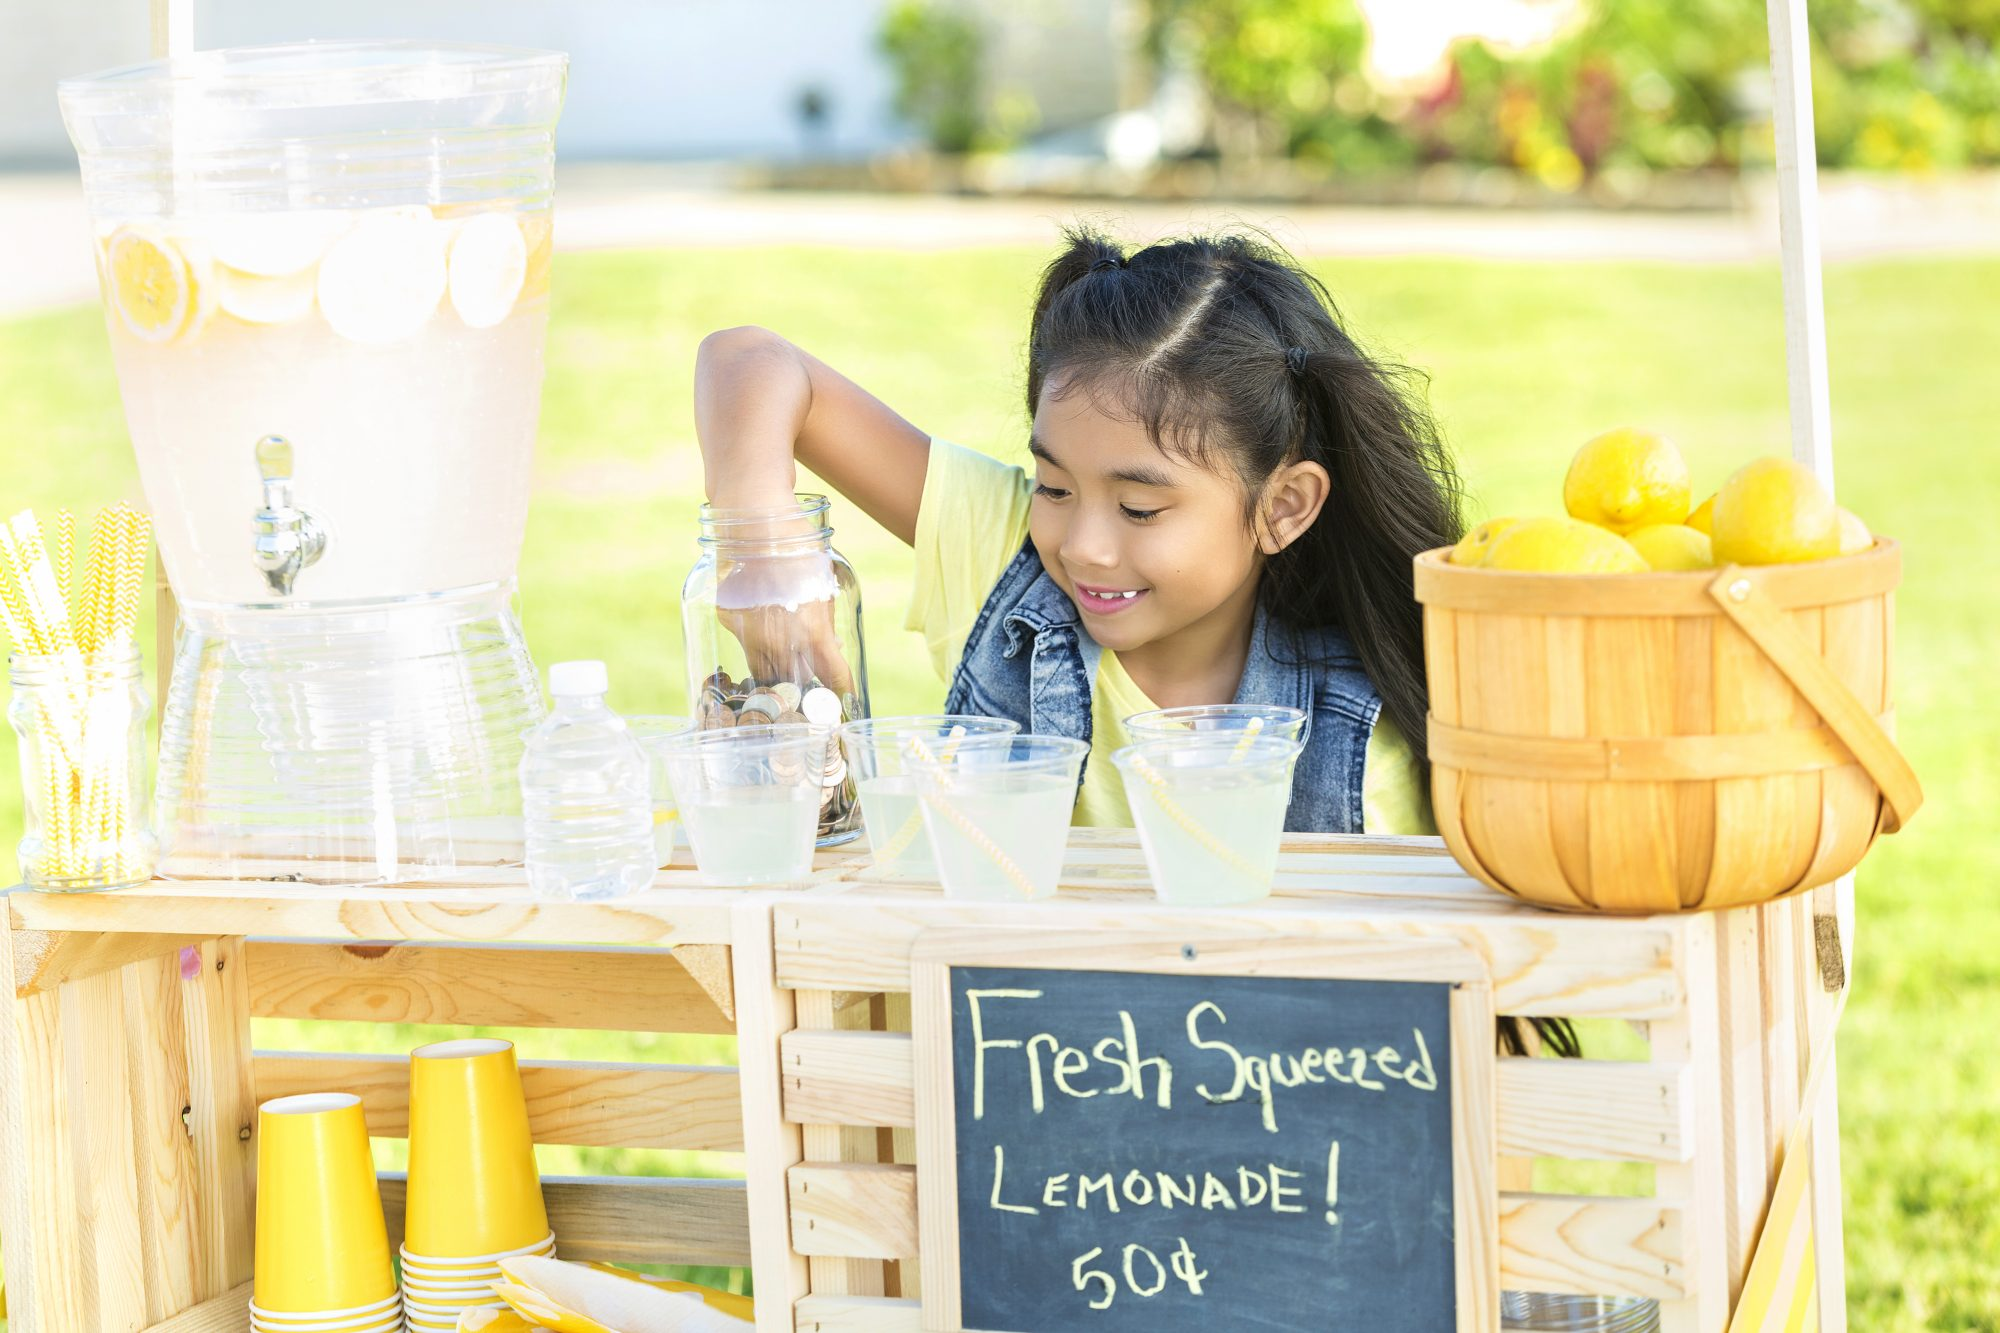 Texas Has Legalized Lemonade Stands